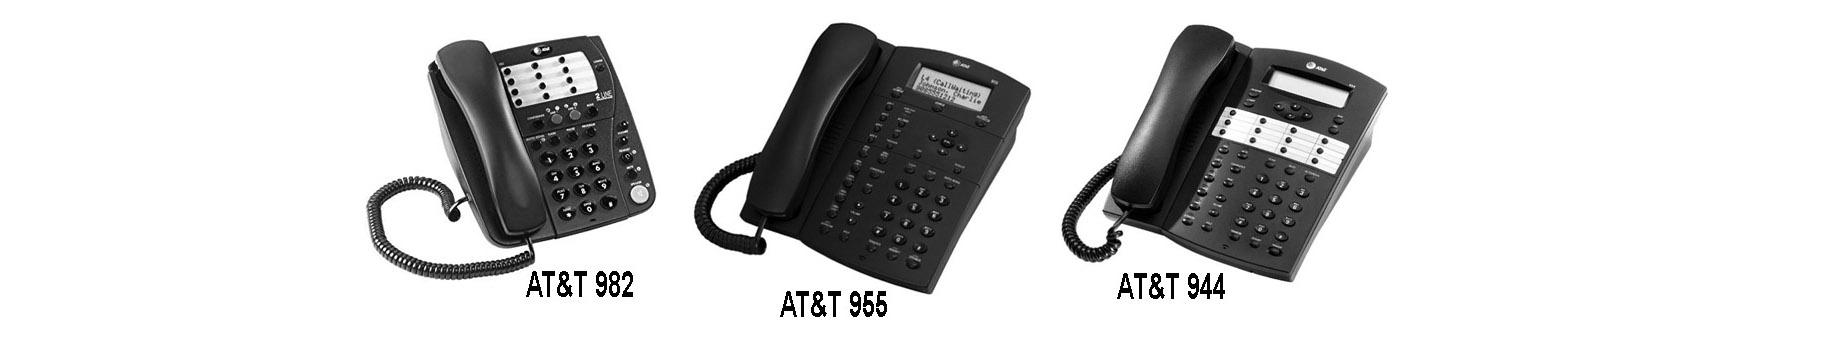 Three of the many new AT&T business phones